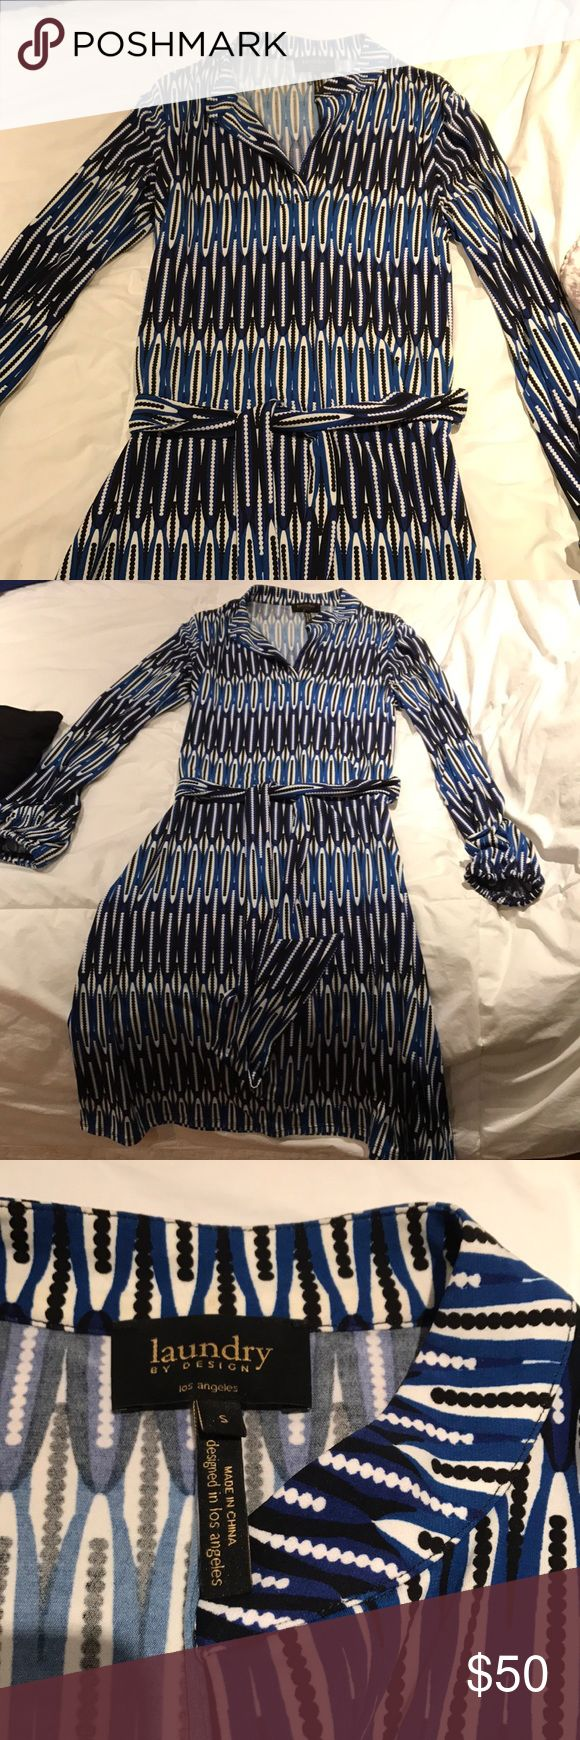 EUC laundry Dress Blue, white, and black slip on dress. Comes with tie around waist. Excellent for work! Size small. Laundry by Design Dresses